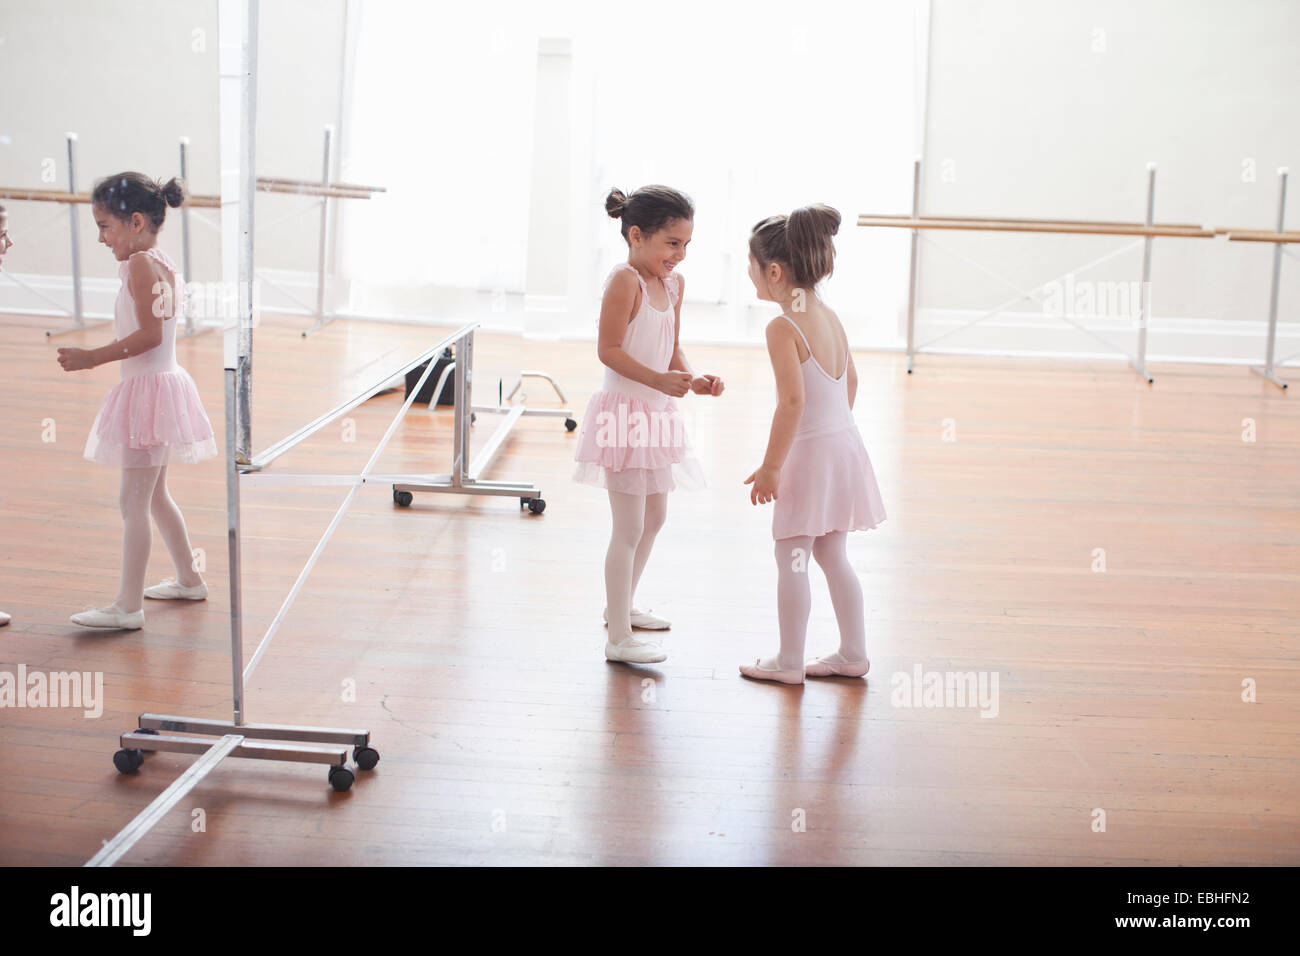 Deux ballerines enfant chatting in ballet school Photo Stock